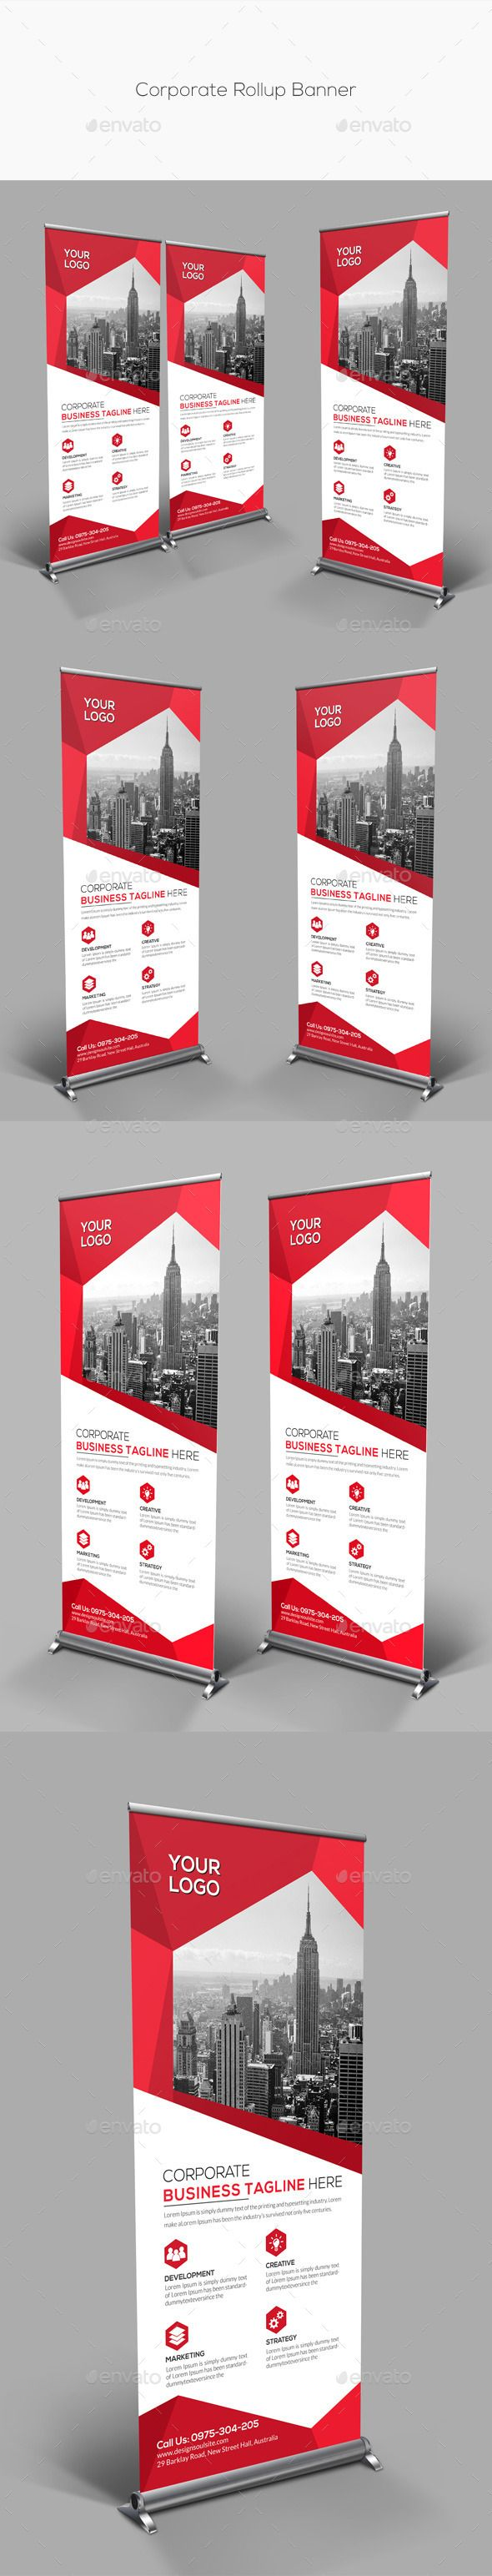 Corporate Rollup Banner Template #design Download: http://graphicriver.net/item/corporate-rollup-banner/13168076?ref=ksioks